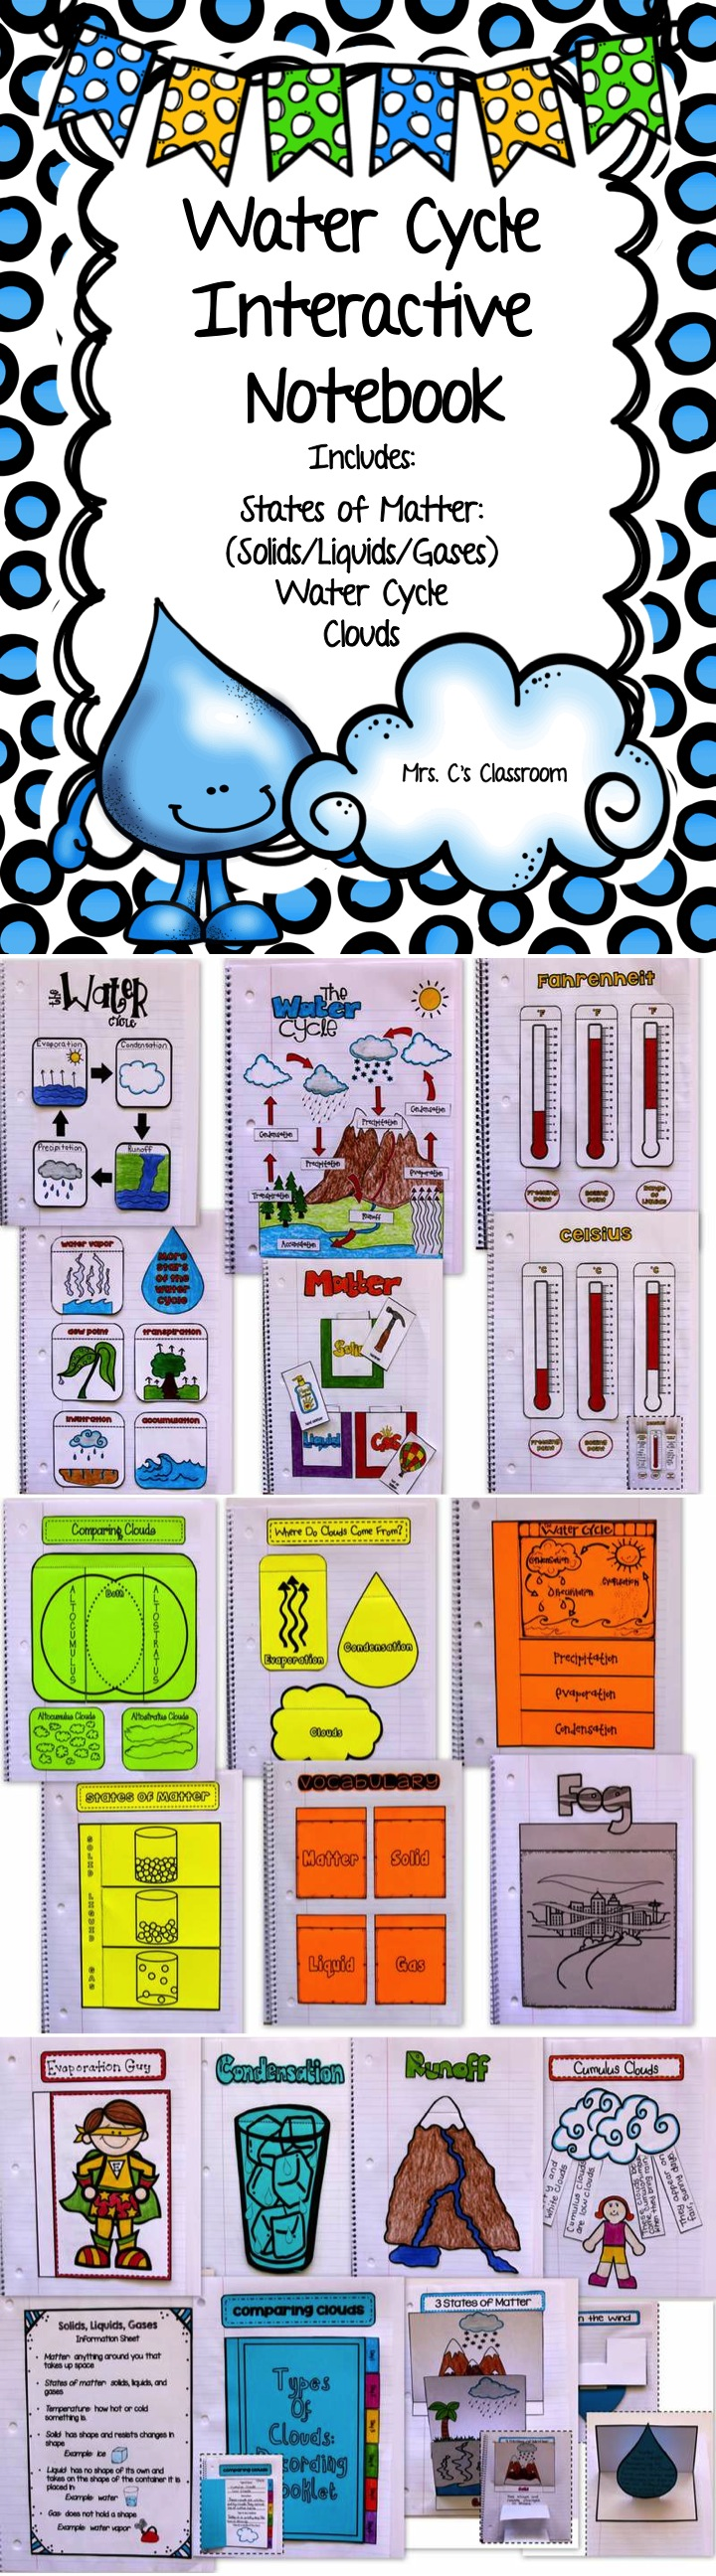 WATER CYCLE CLOUDS MATTER Solids Liquids Gases Interactive Notebook